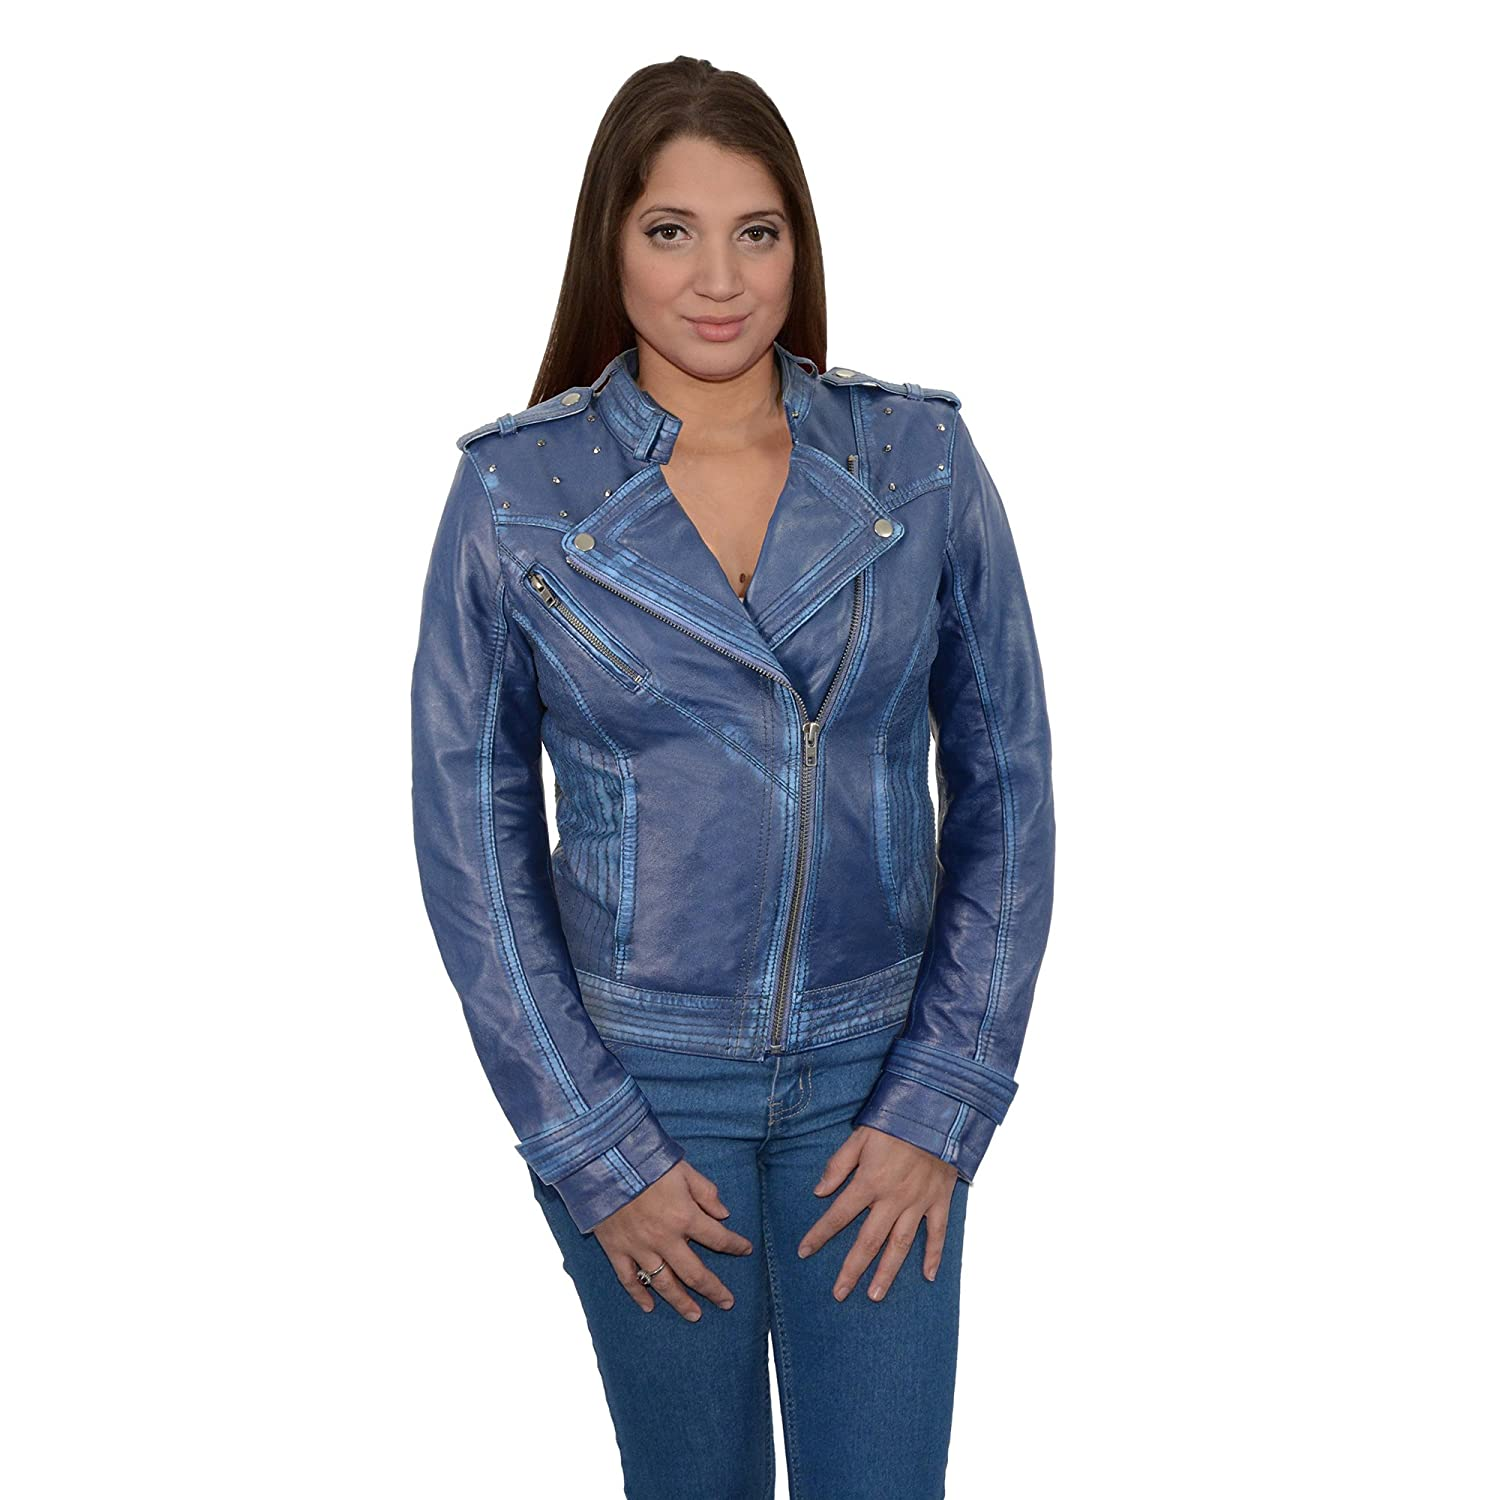 Milwaukee Leather Women's Sheepskin Asymmetrical Moto Jacket With Studding (Pink, Small), 1 Pack SFL2840-PNK-S